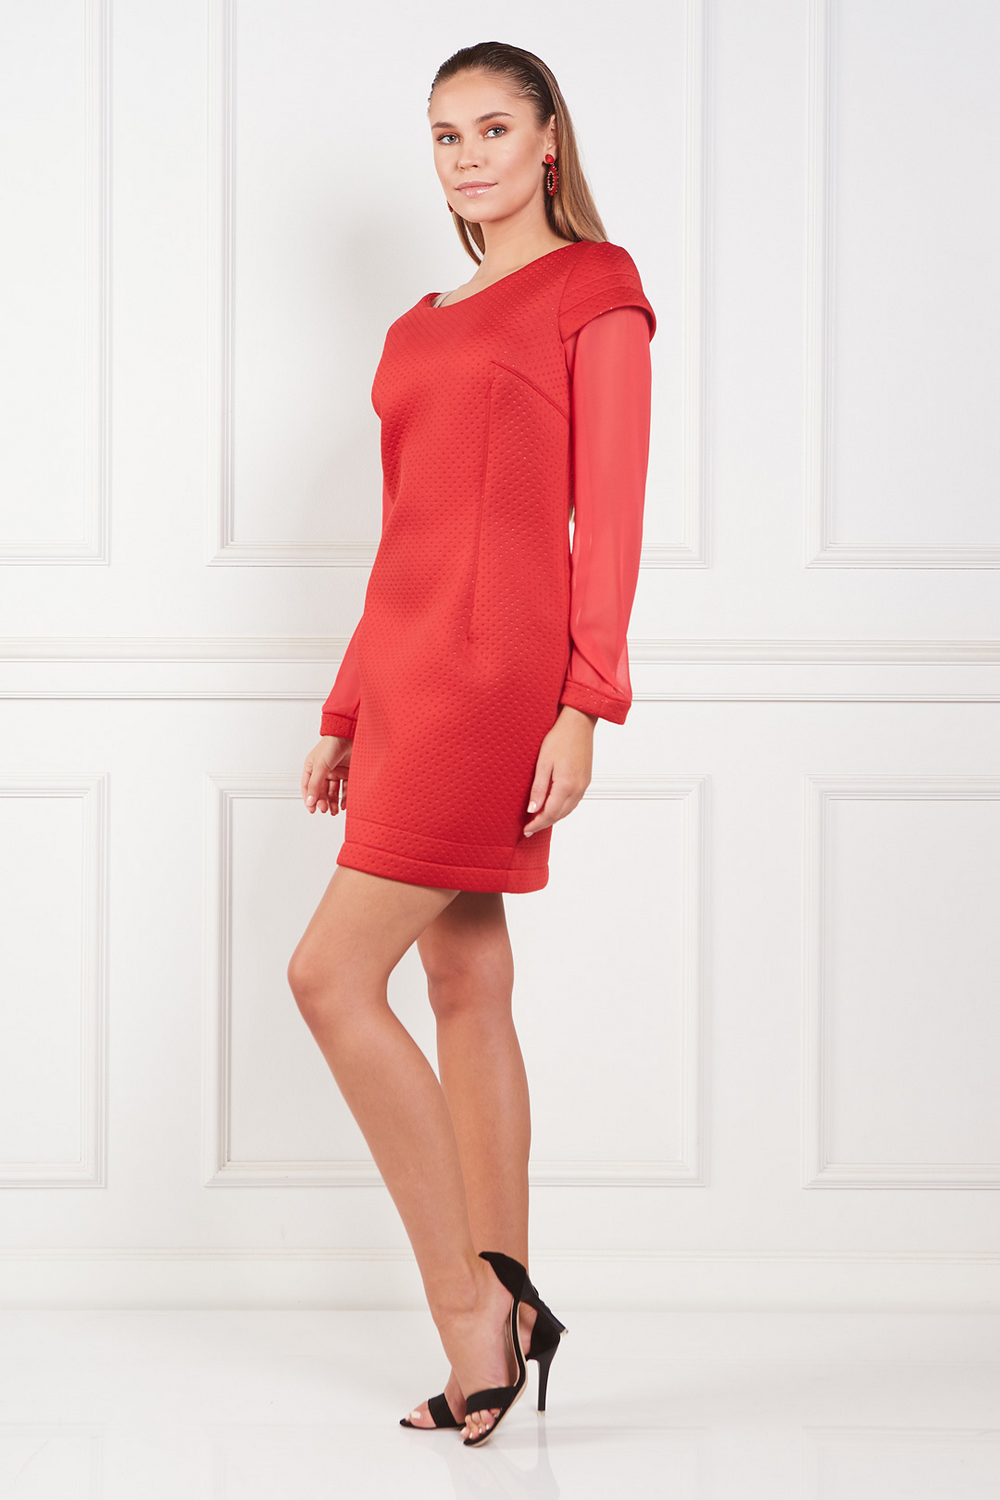 red-lopez-dress (1)